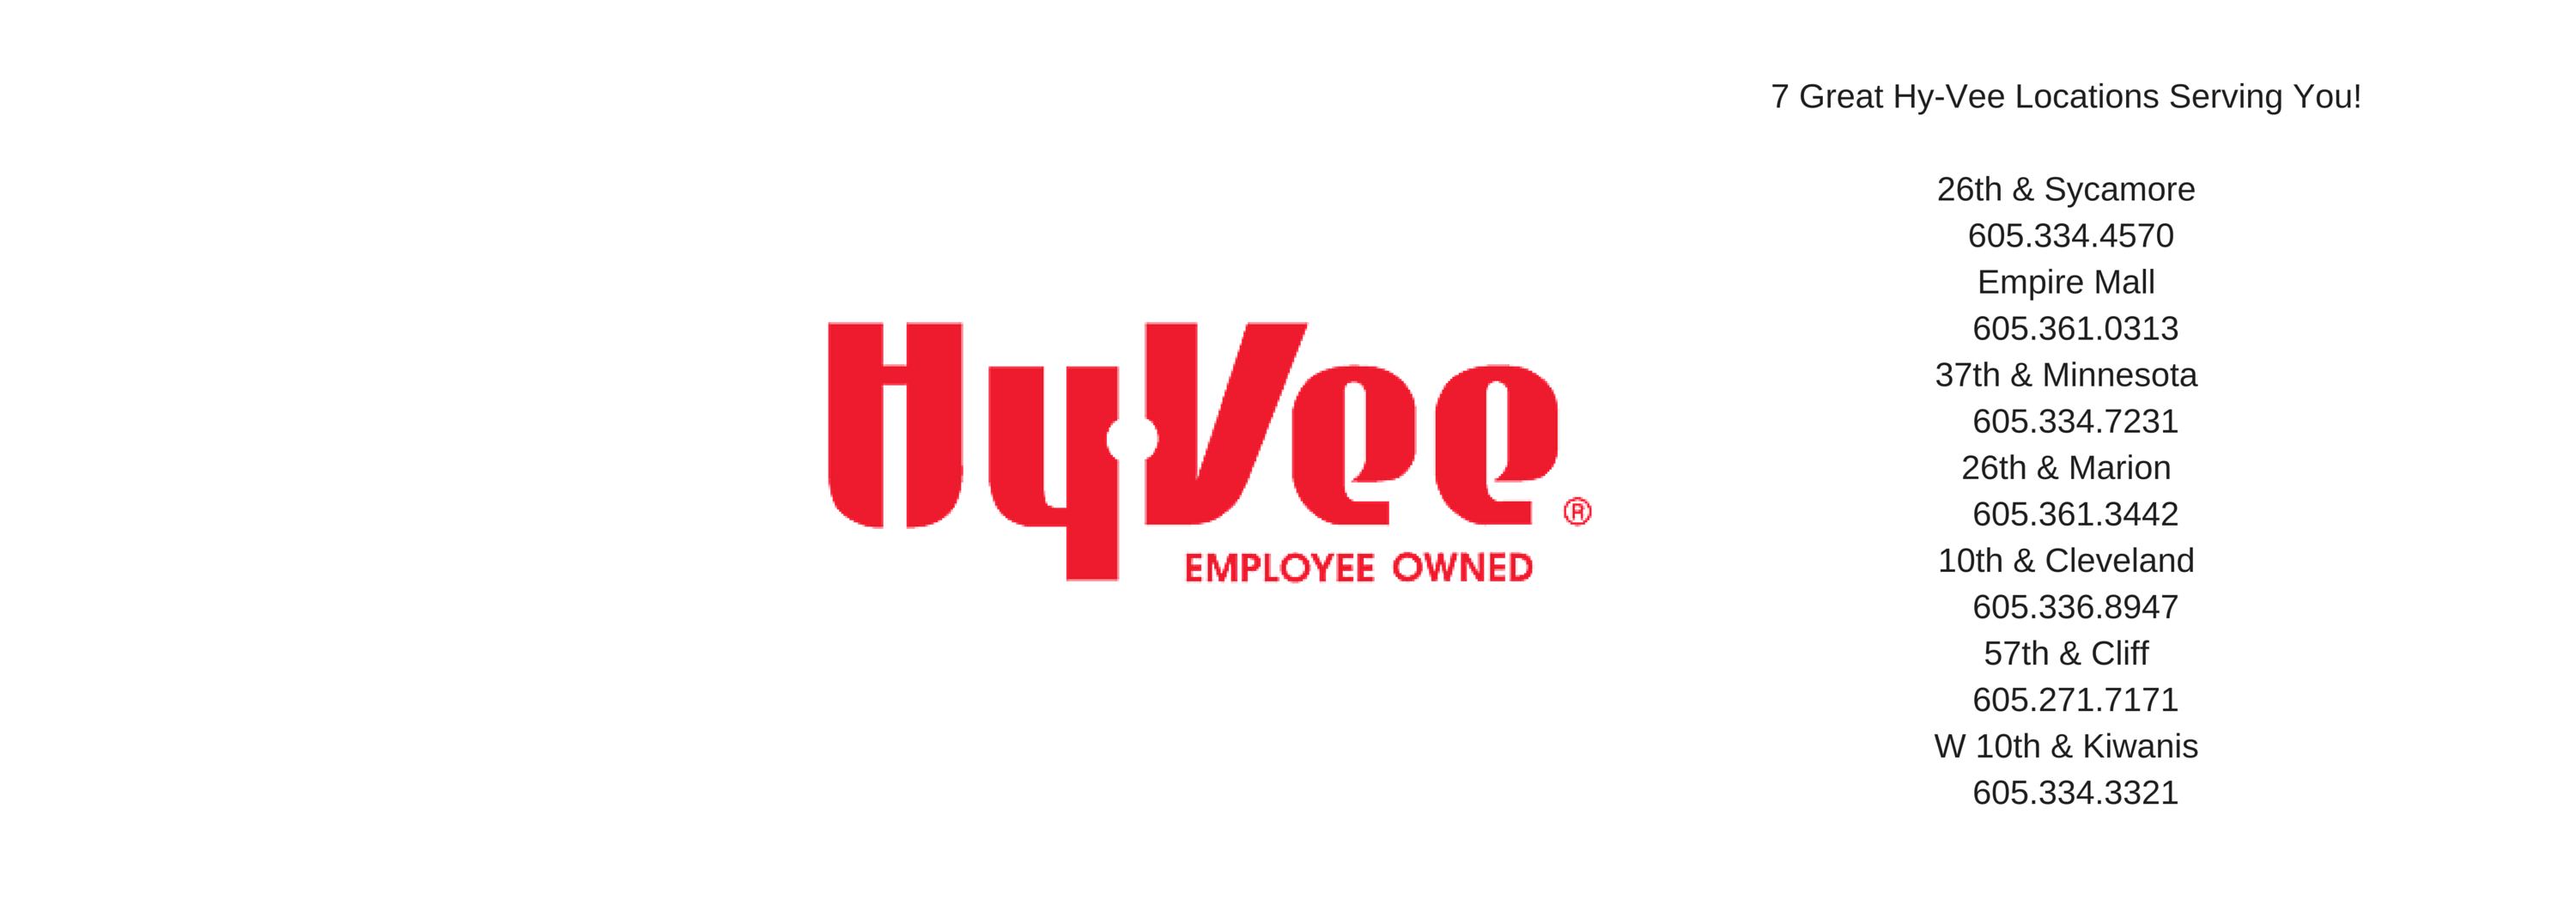 7 Great Hy-Vee Locations Serving You! 26th & Sycamore 605.334.4570 Empire Mall 605.361.031337th & Min